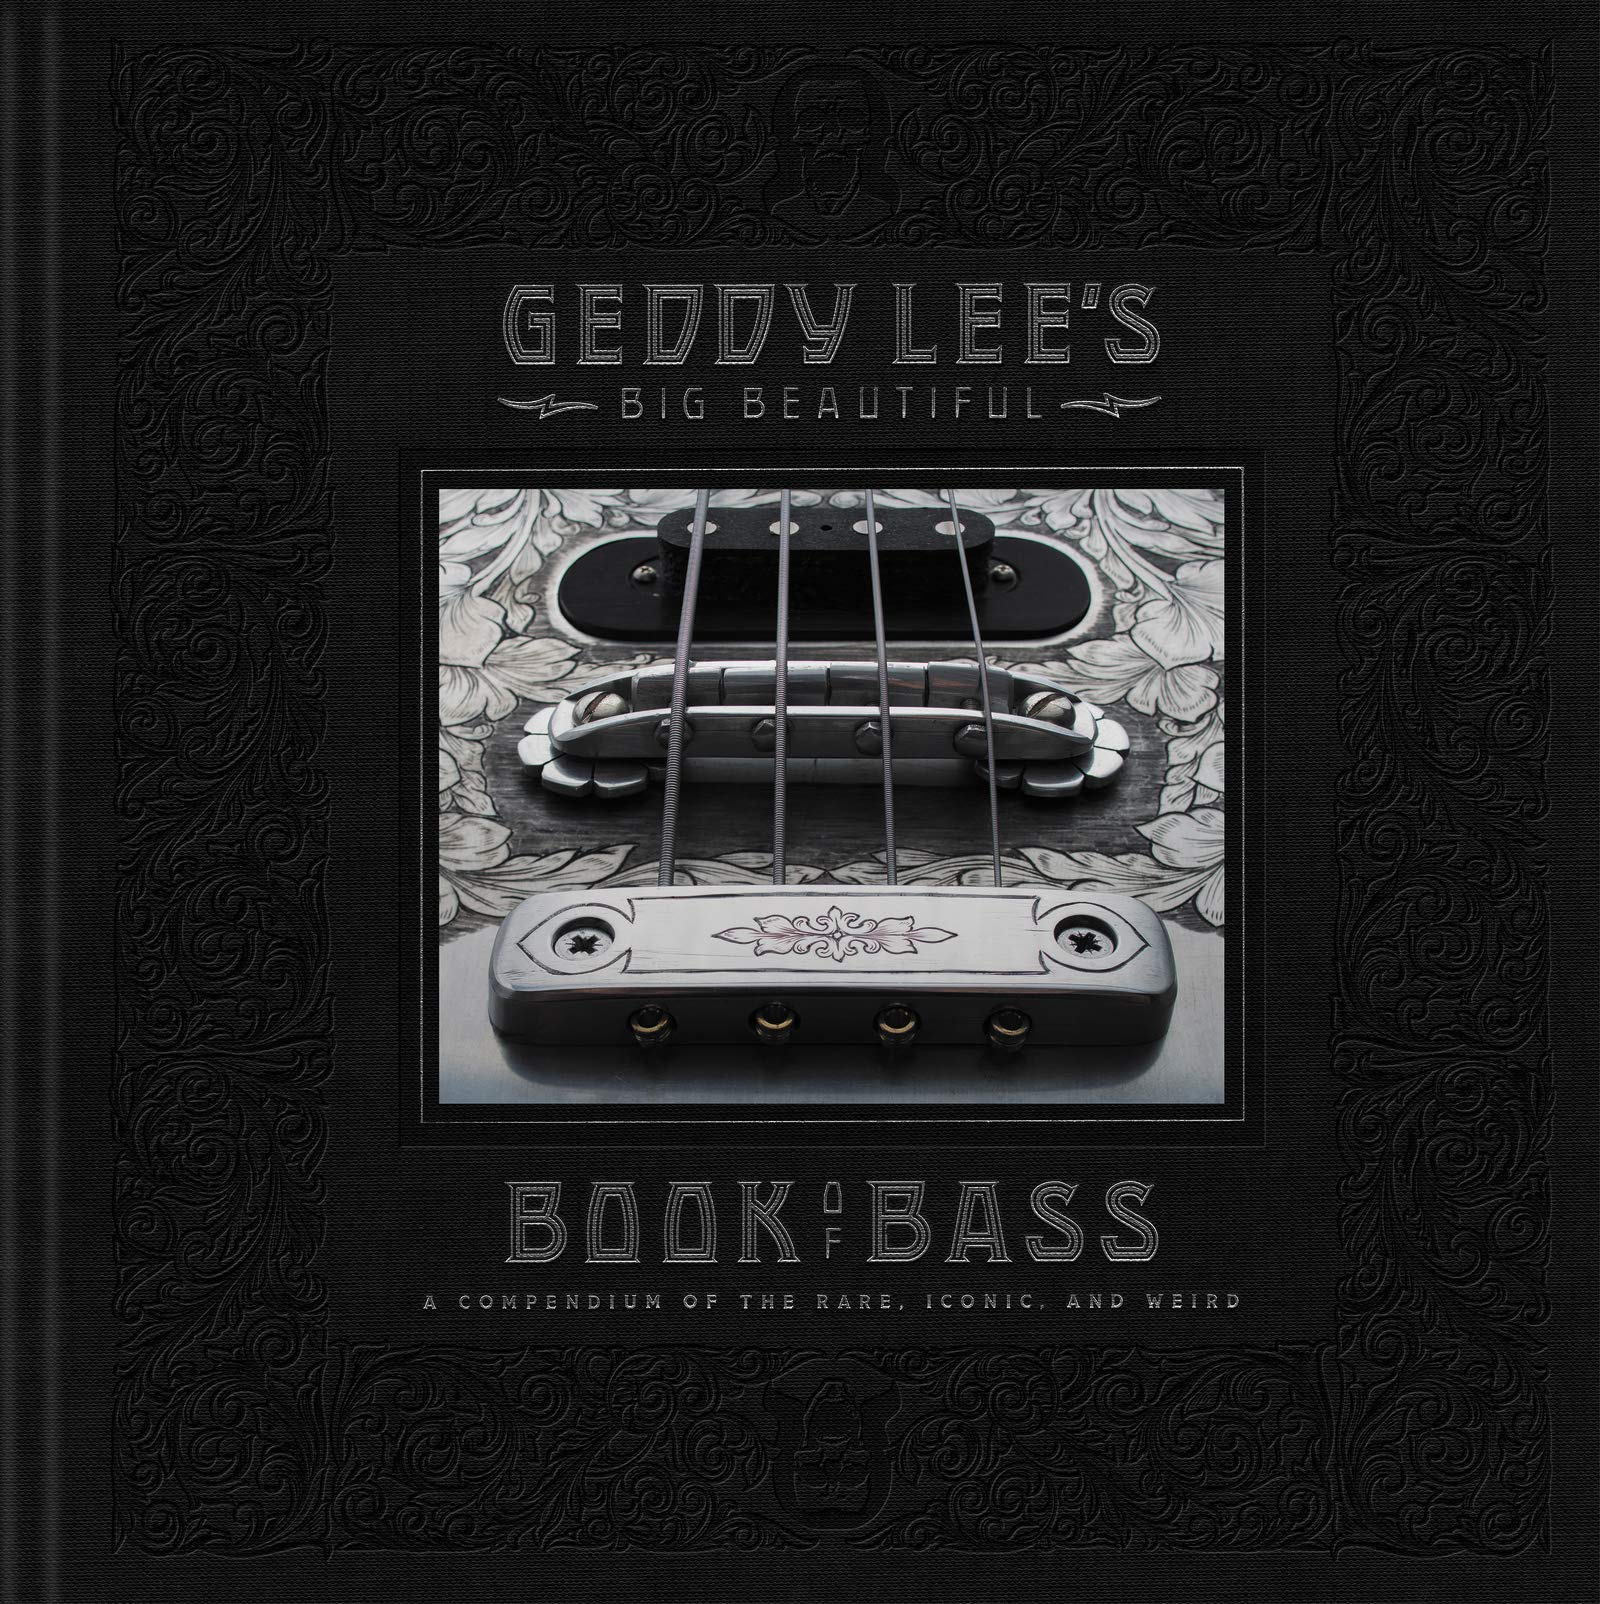 Geddy Lee's Big Beautiful Book of Bass by Harper Design